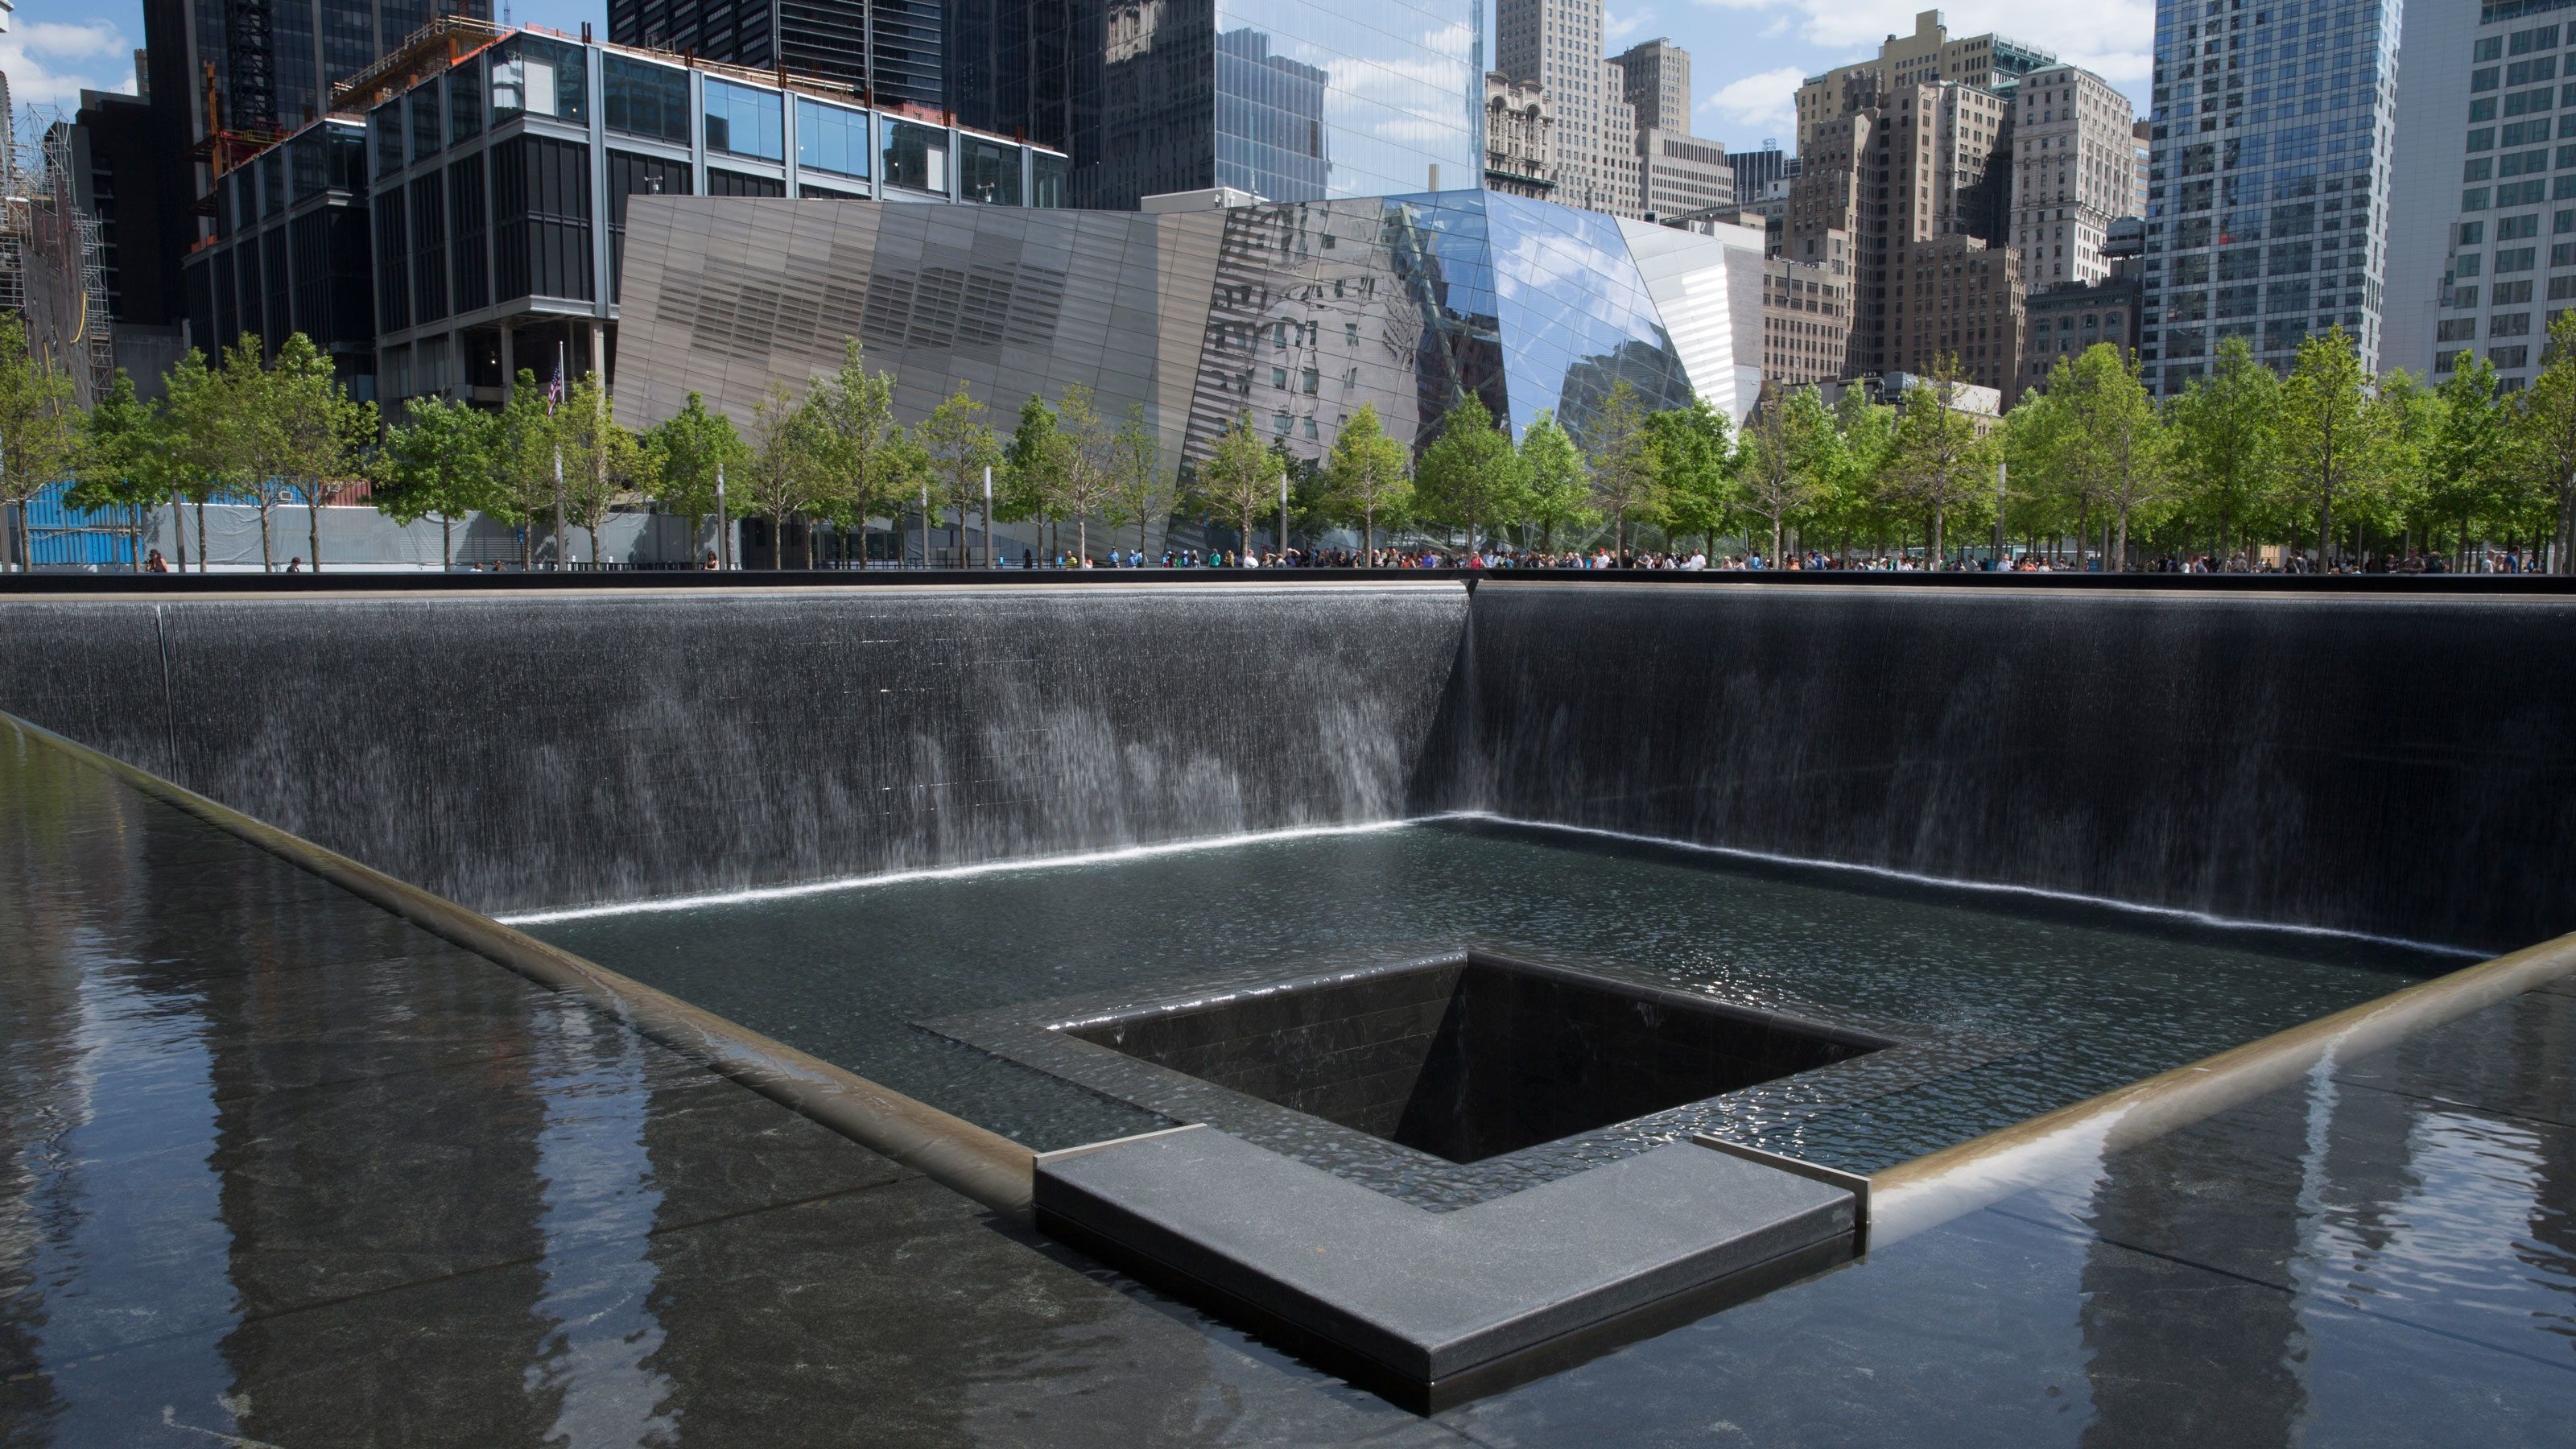 Fountain at the National September 11 Memorial & Museum in New York